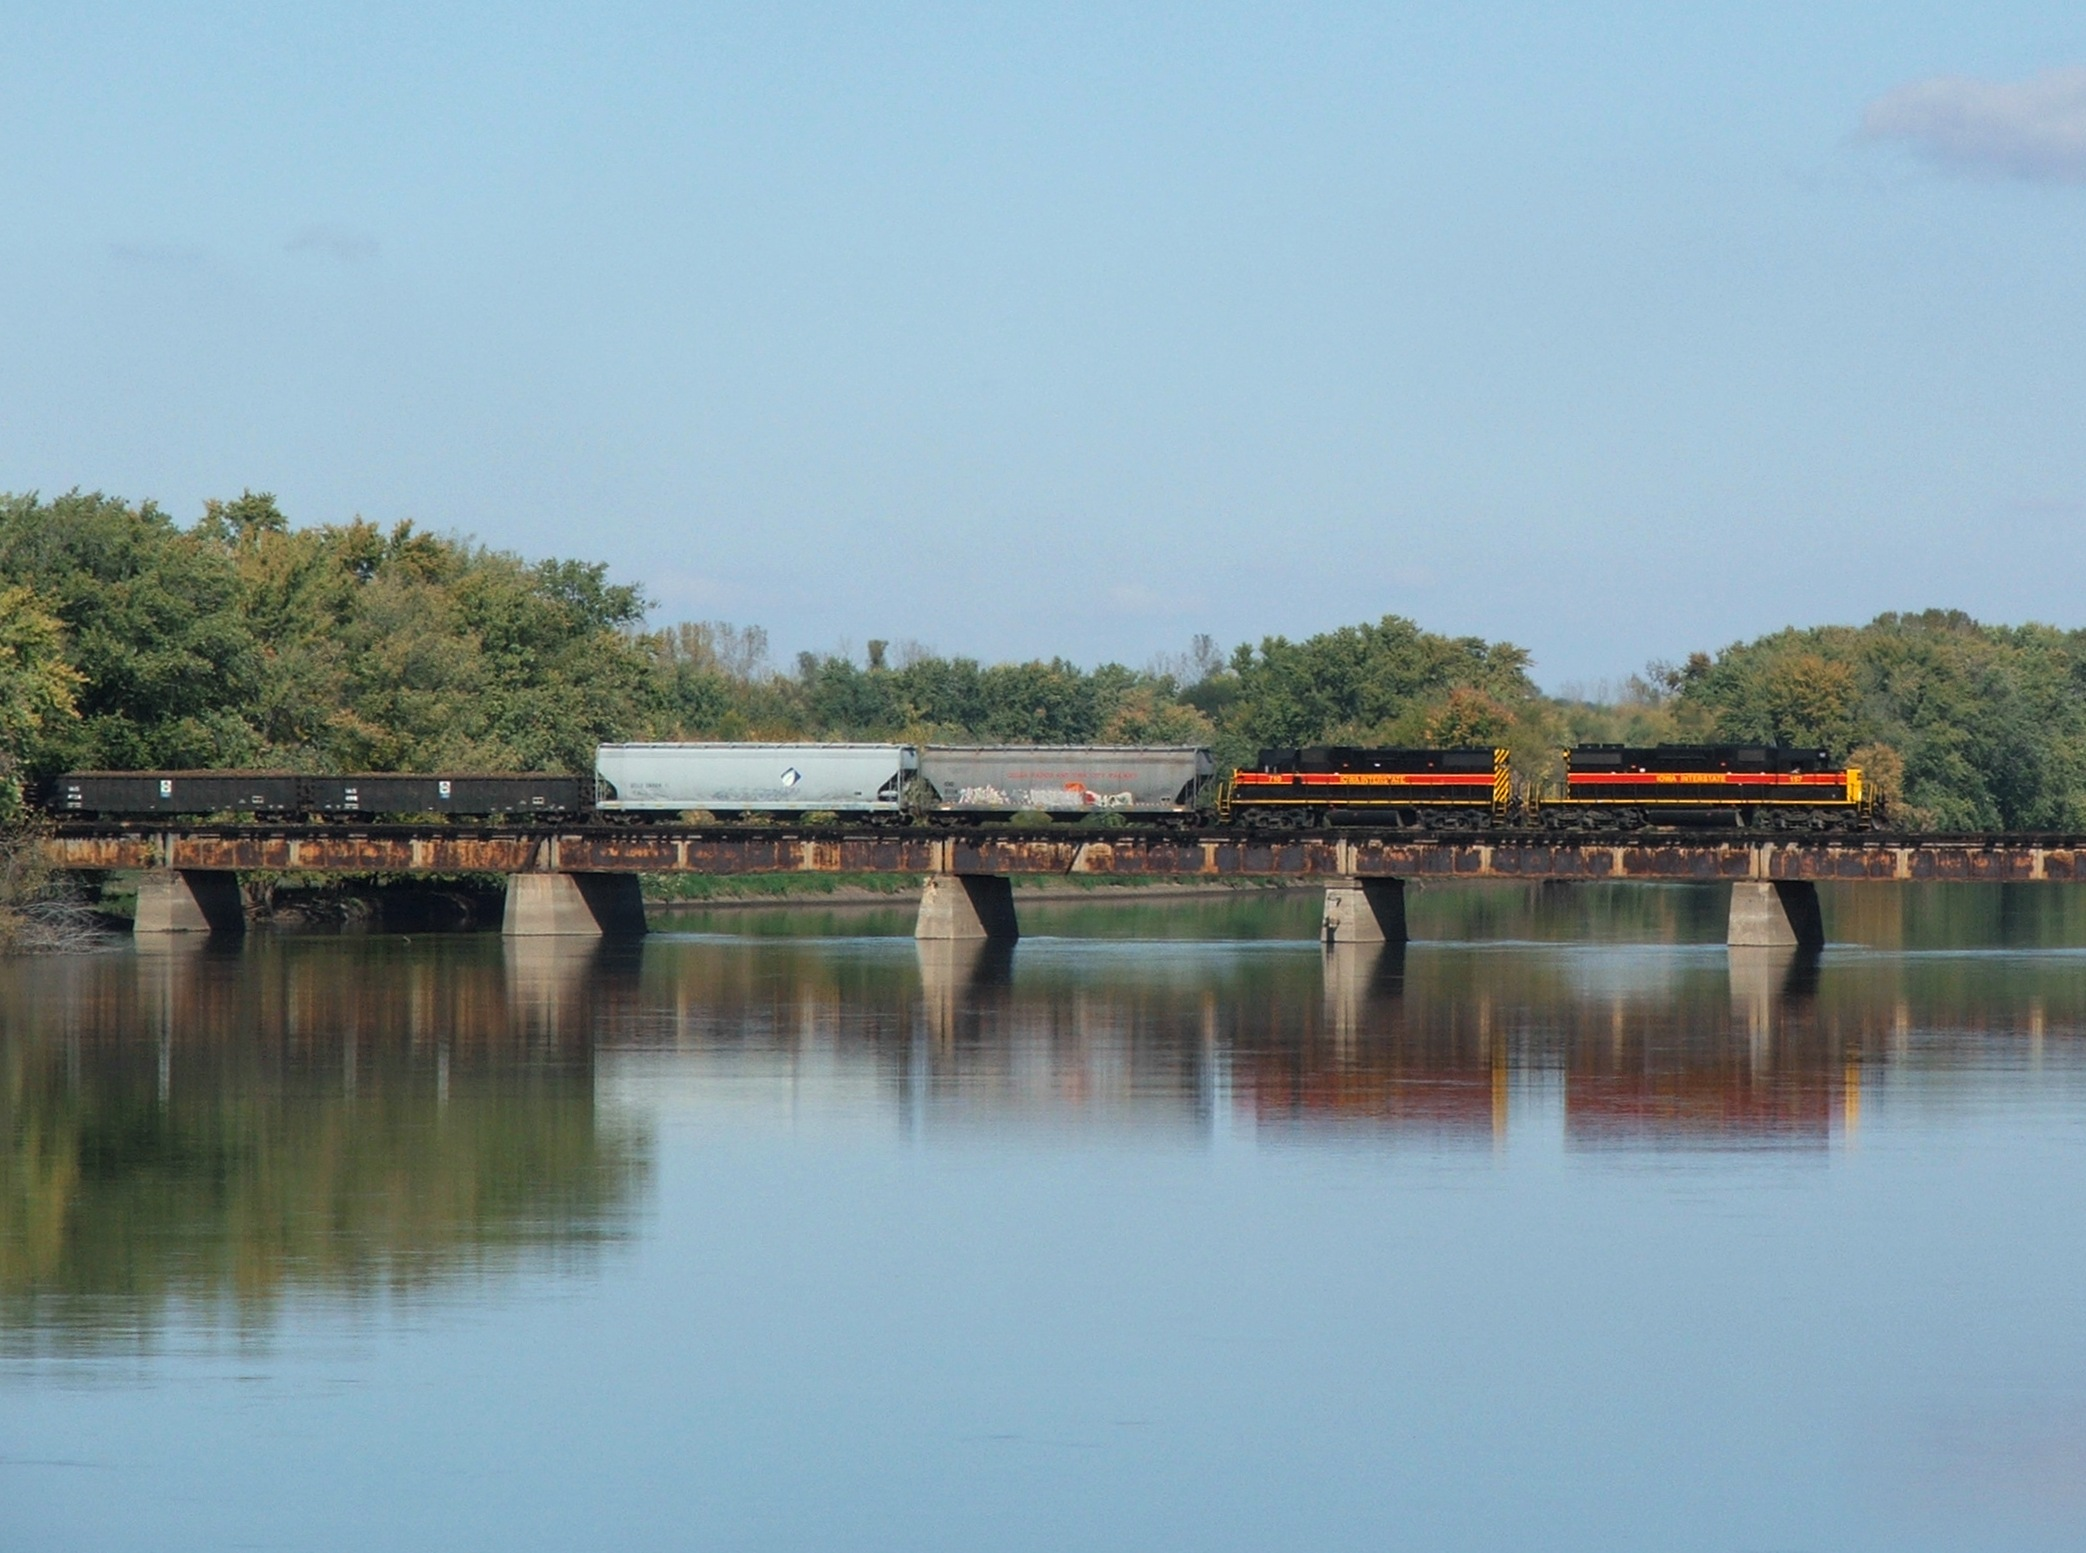 BUSW Iowa 157 heads over the Rock River as they bring the short train into Colona, IL.